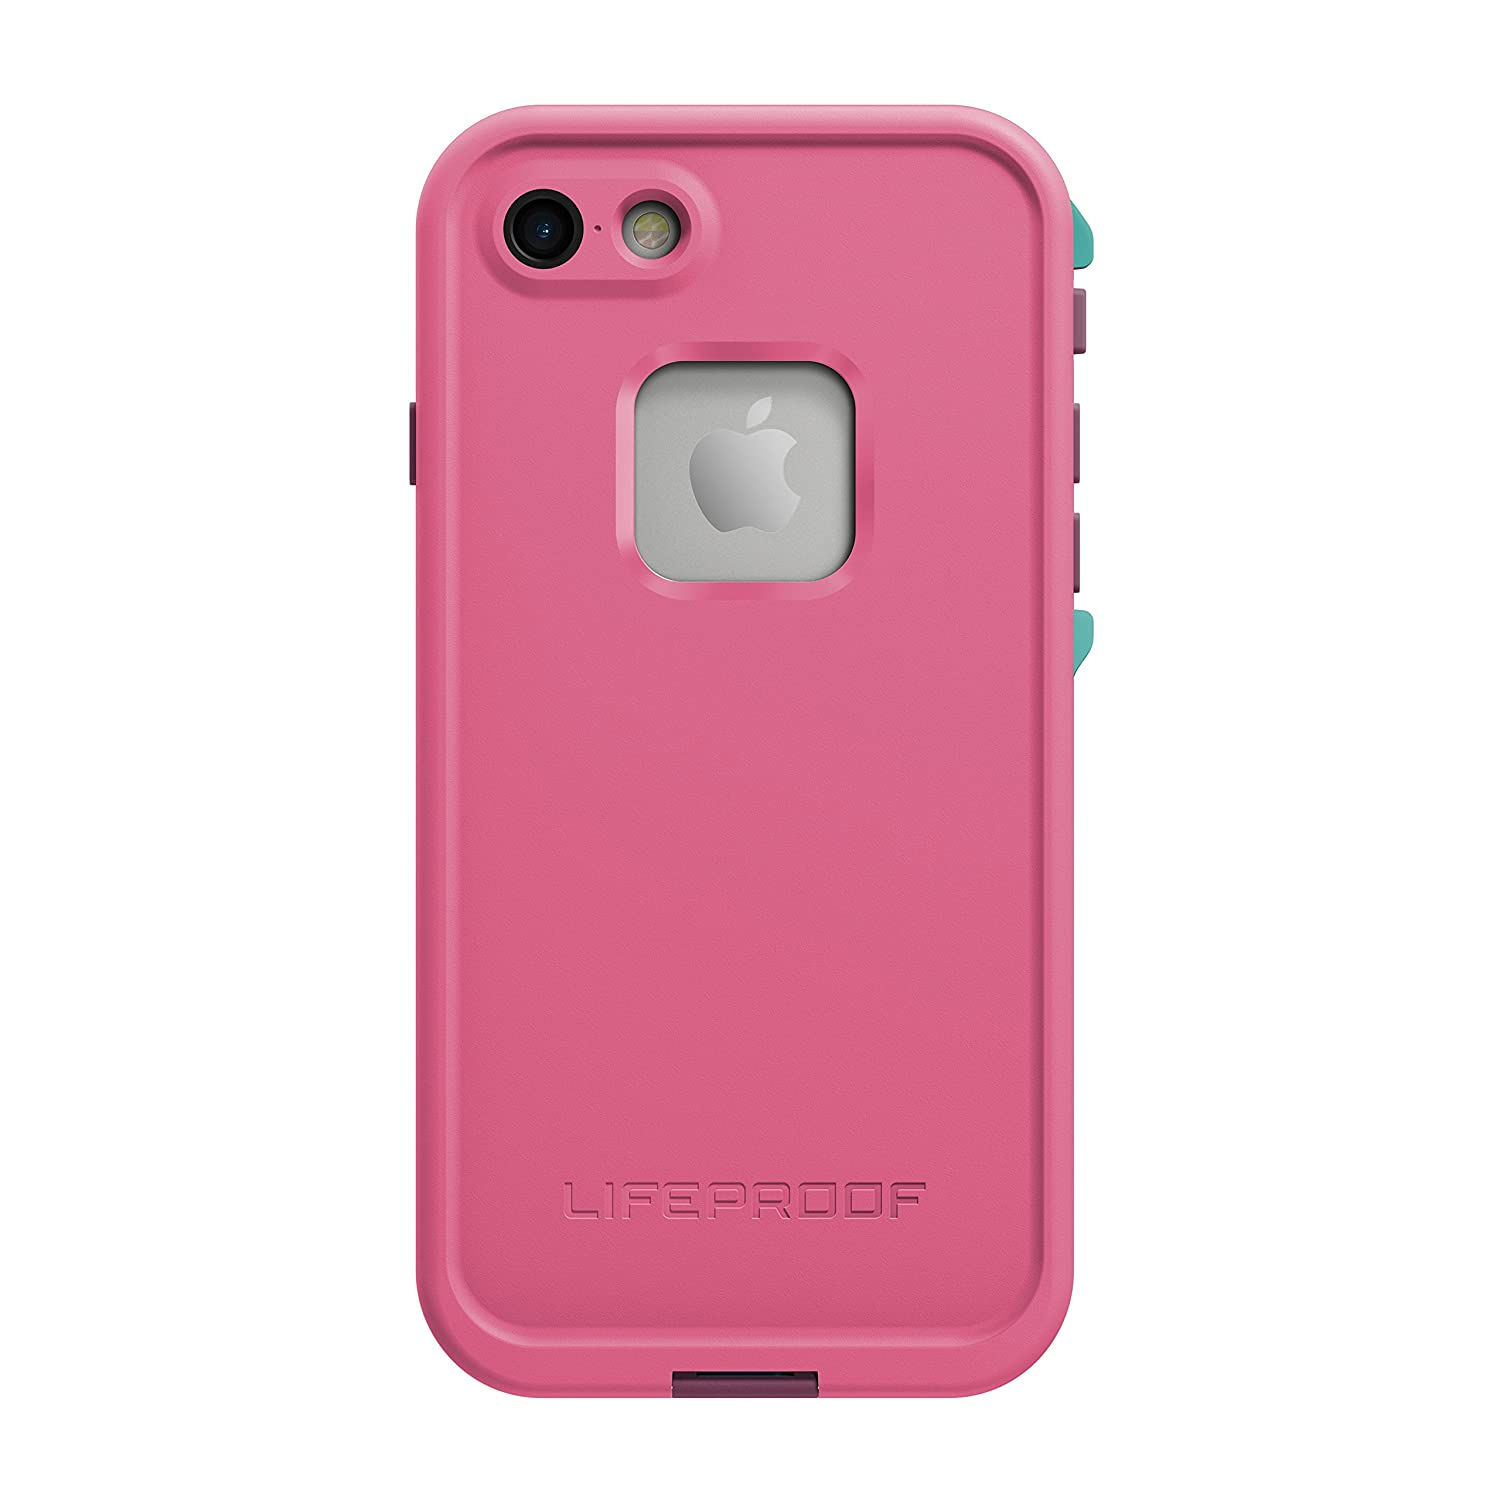 factory price 6ccc9 d97e0 Lifeproof FRE SERIES Waterproof Case for iPhone 7 (ONLY) - Retail Packaging  - TWILIGHTS EDGE (GRAPE RIOT/PLUM HAZE/LIGHT TEAL BLUE)